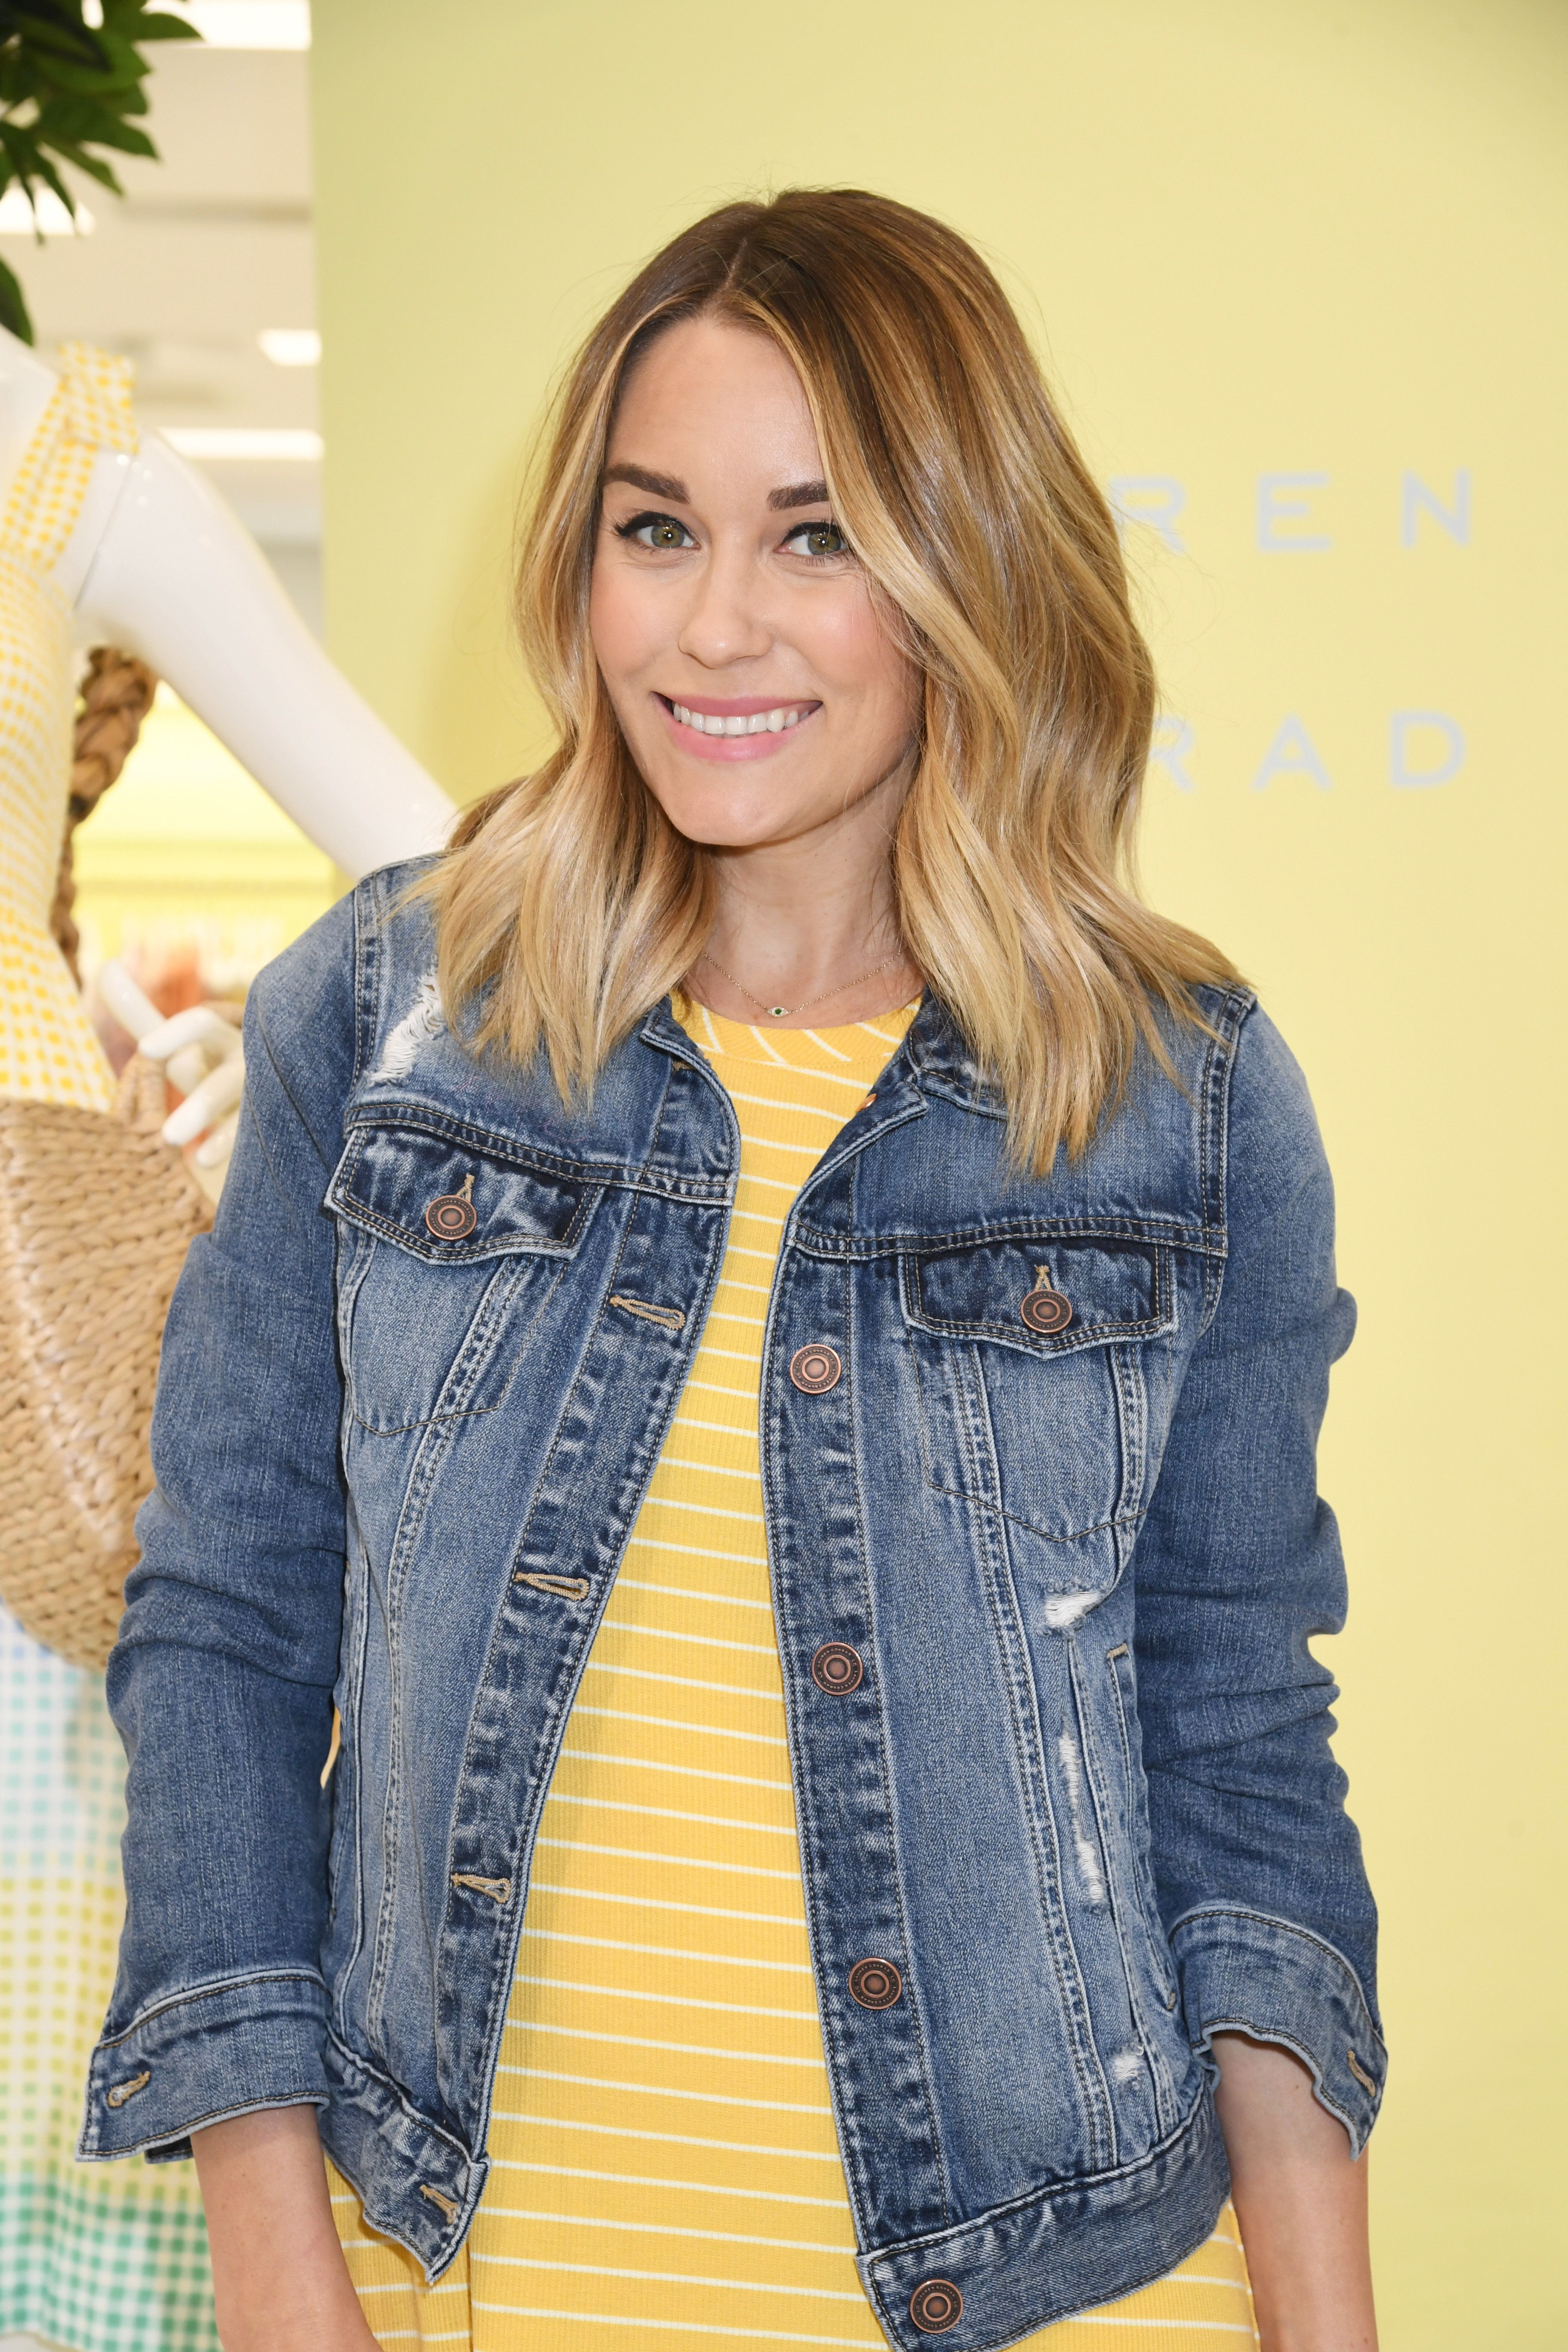 Lauren Conrad debuts Kohl's LC Lauren Conrad Spring Collection on April 11, 2019, in New York City. (Photo: Jennifer Graylock/Getty Images for Kohls)